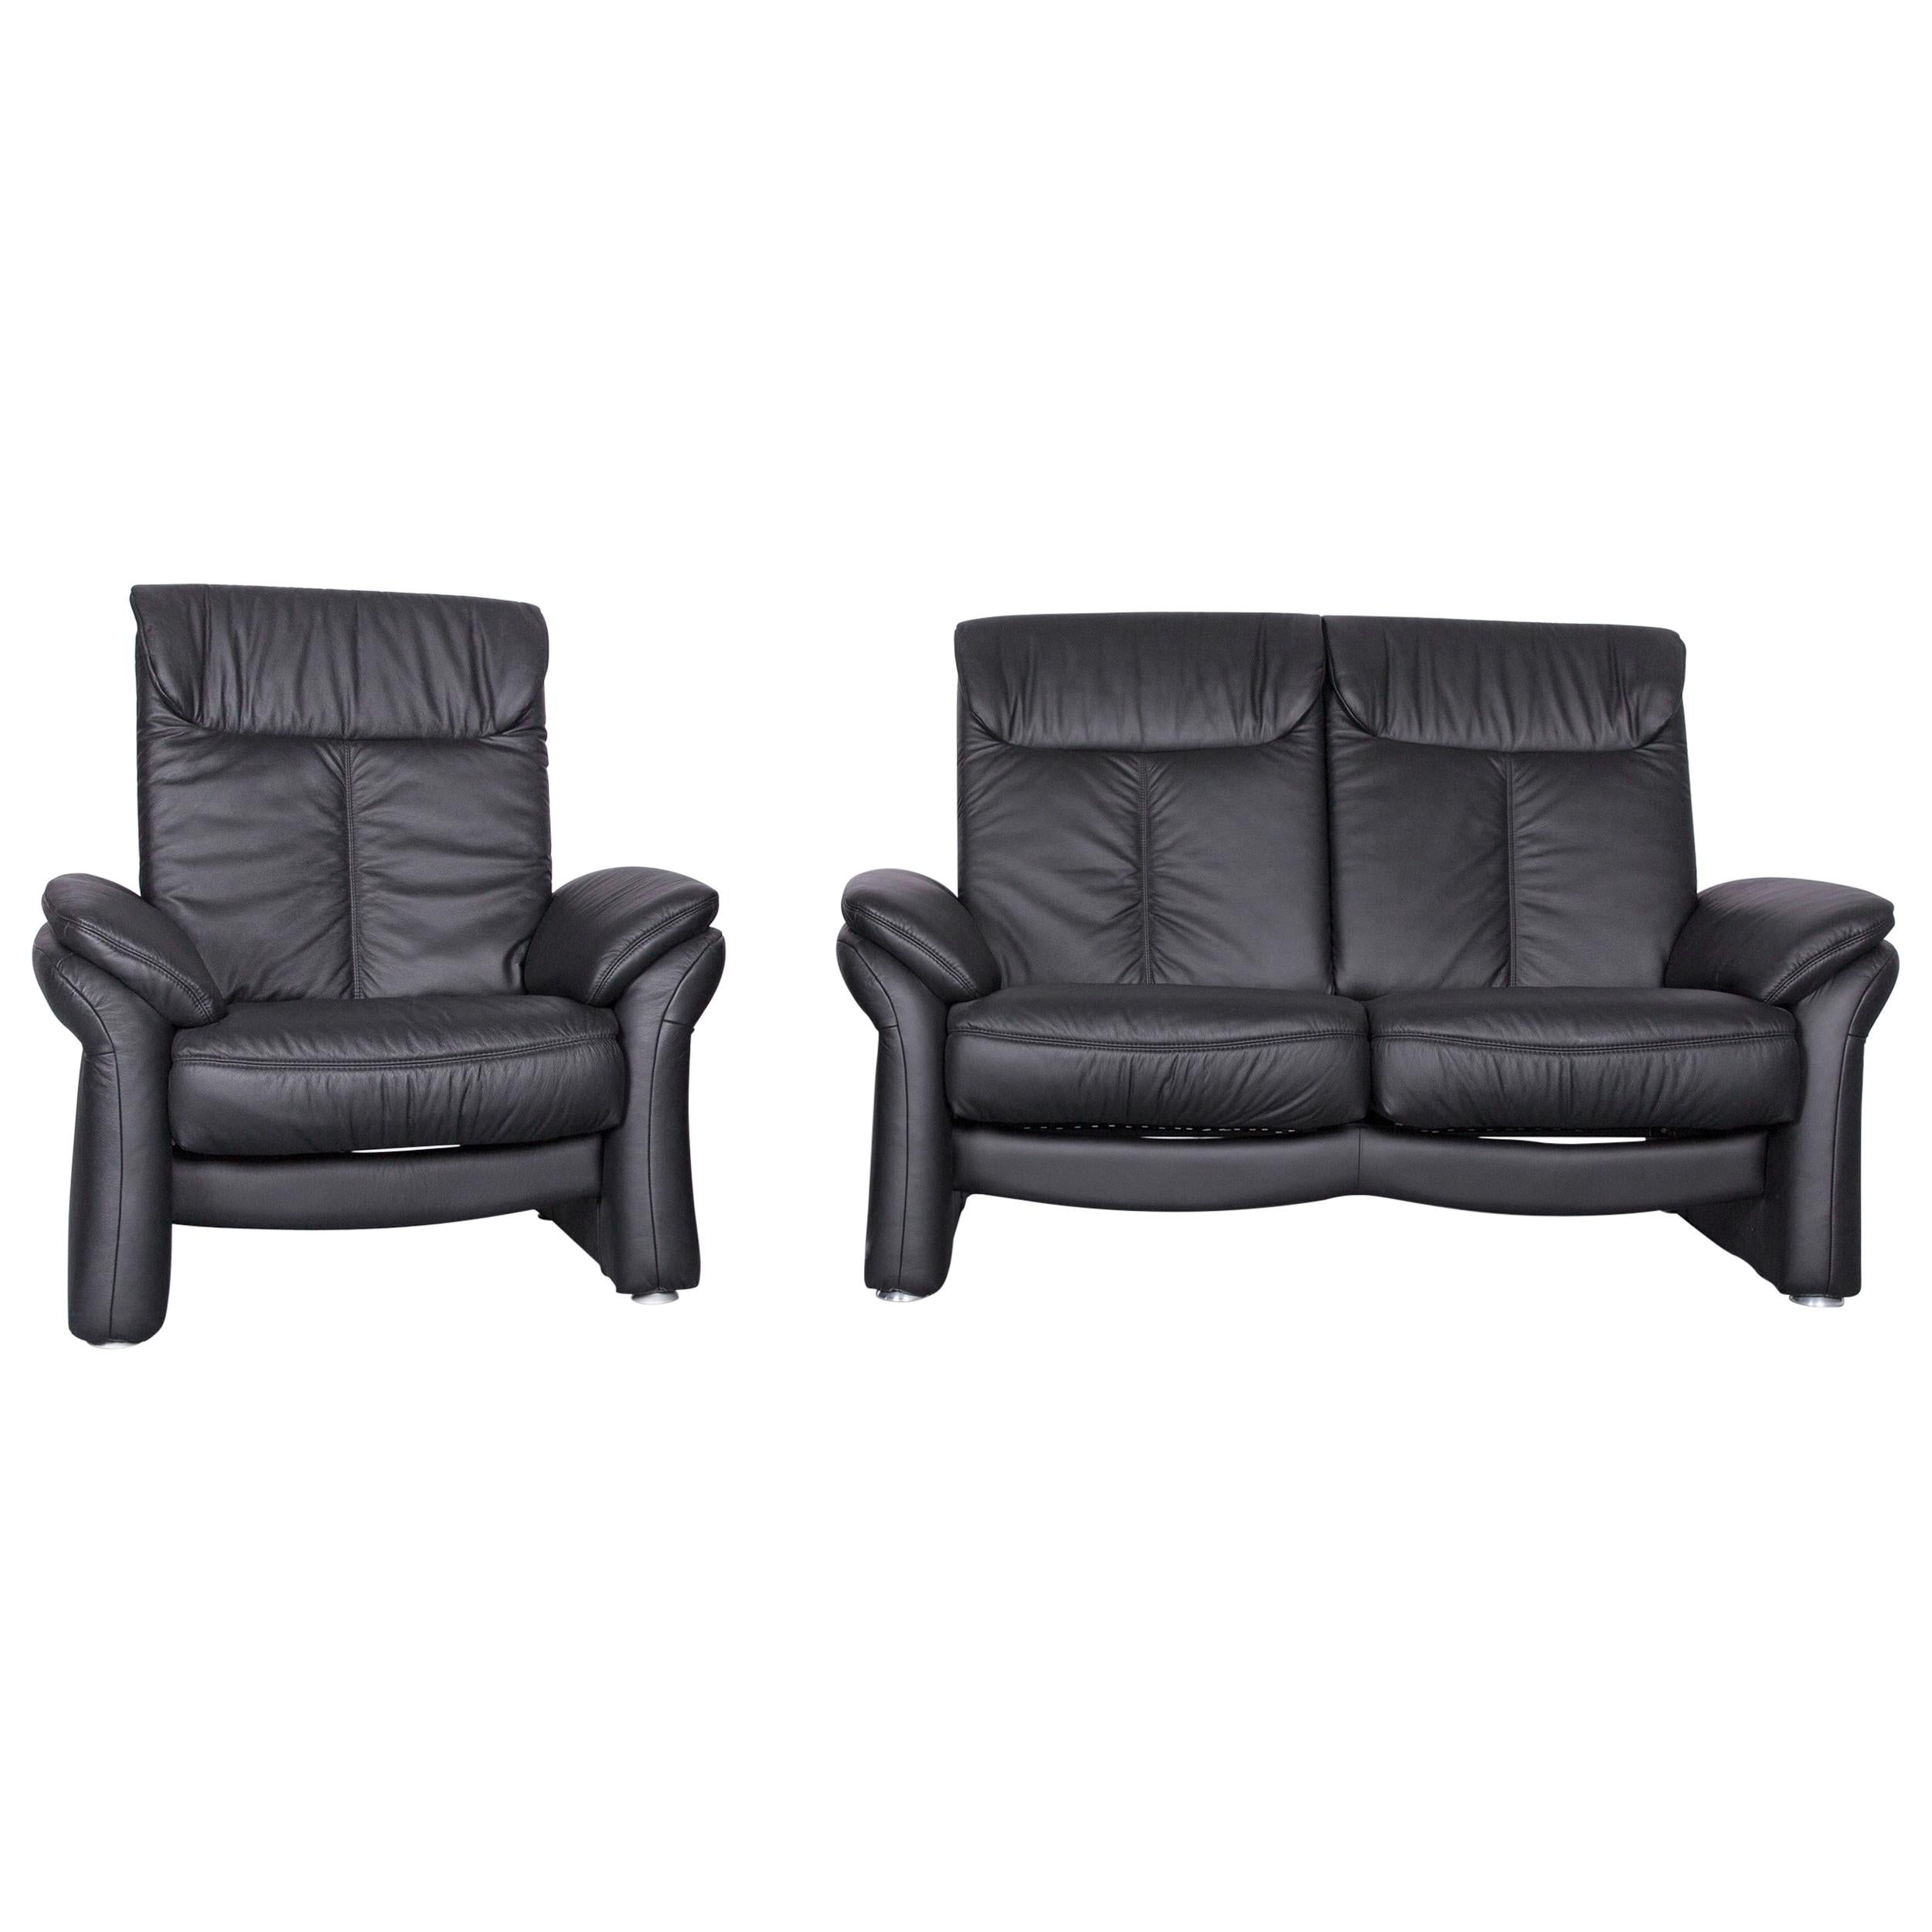 Casada Designer Leather Sofa Armchair Set Black Two Seat Couch Recliner For  Sale